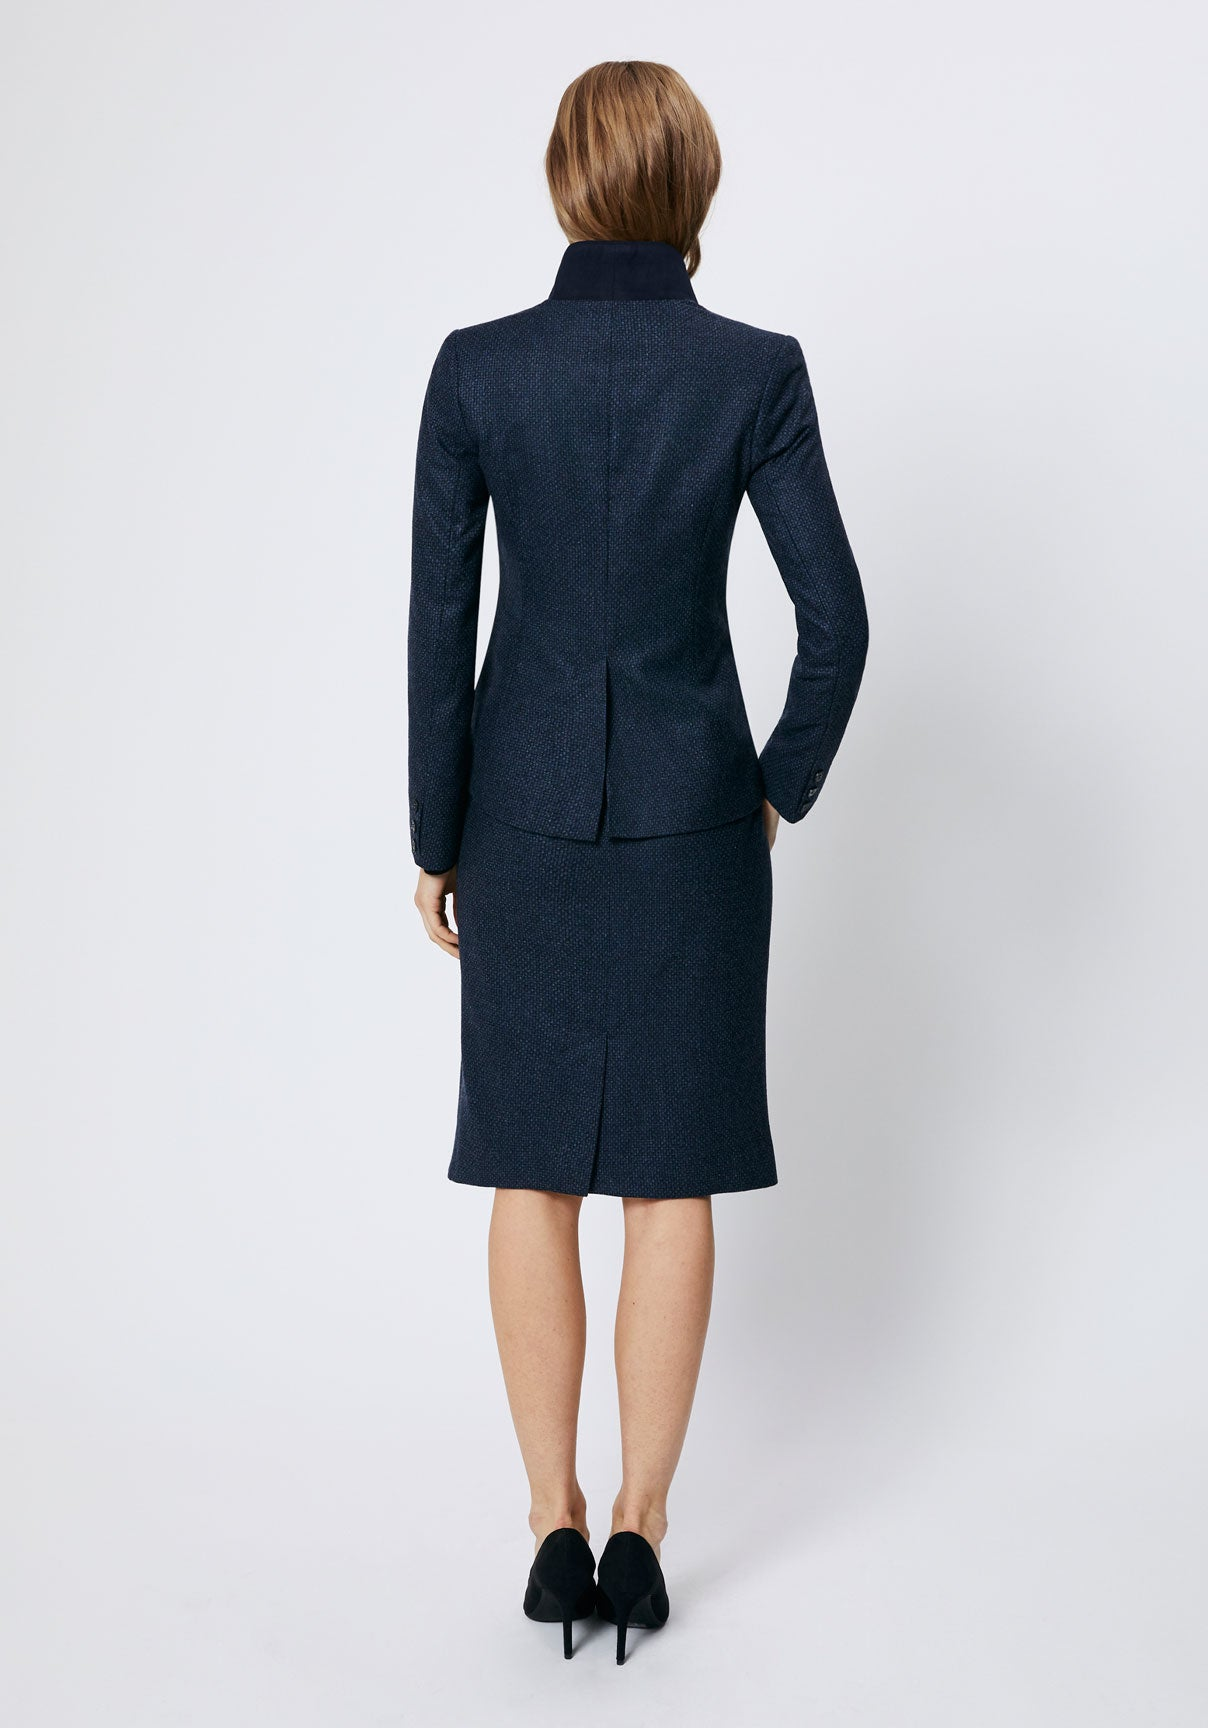 Tallulah Jacket | Navy Pebble Wool